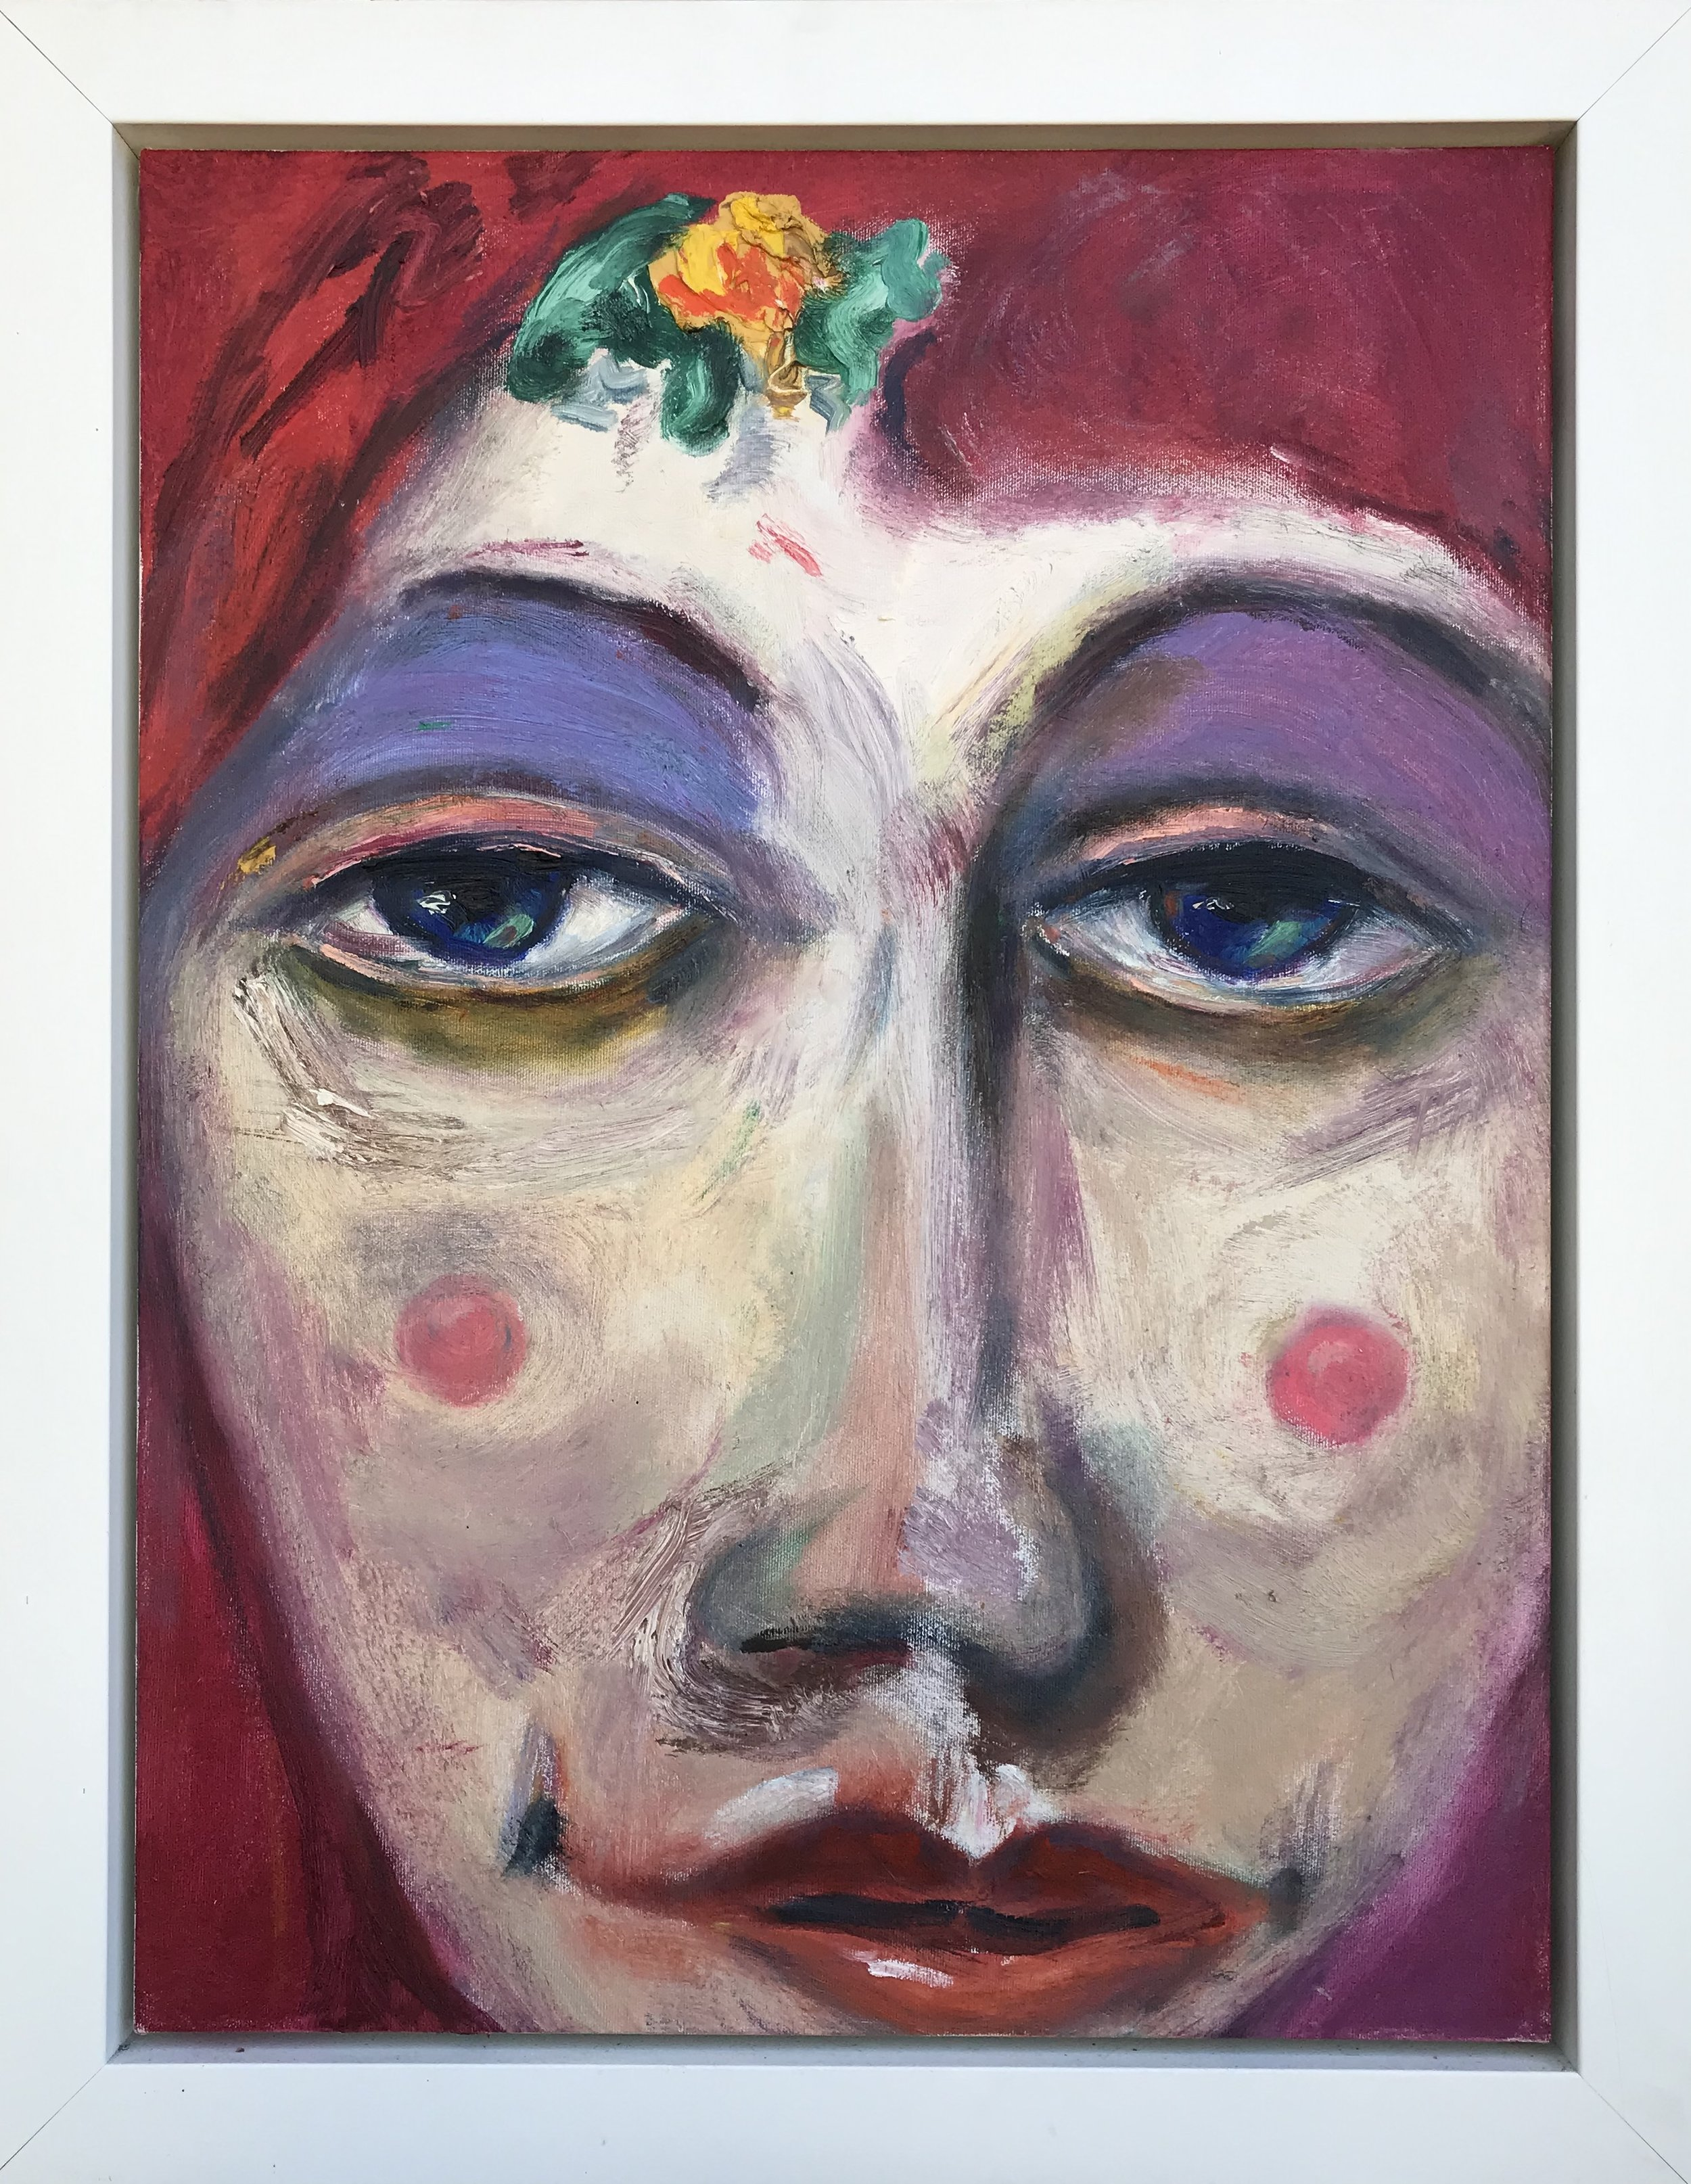 """""""Rosy Rosaline"""" - 24"""" x 18"""" in 3""""white lacquered wood floater frame, oil on canvasValue: $2,200Opening bid: $850email your bid to: art@bradfordbrenner.com"""